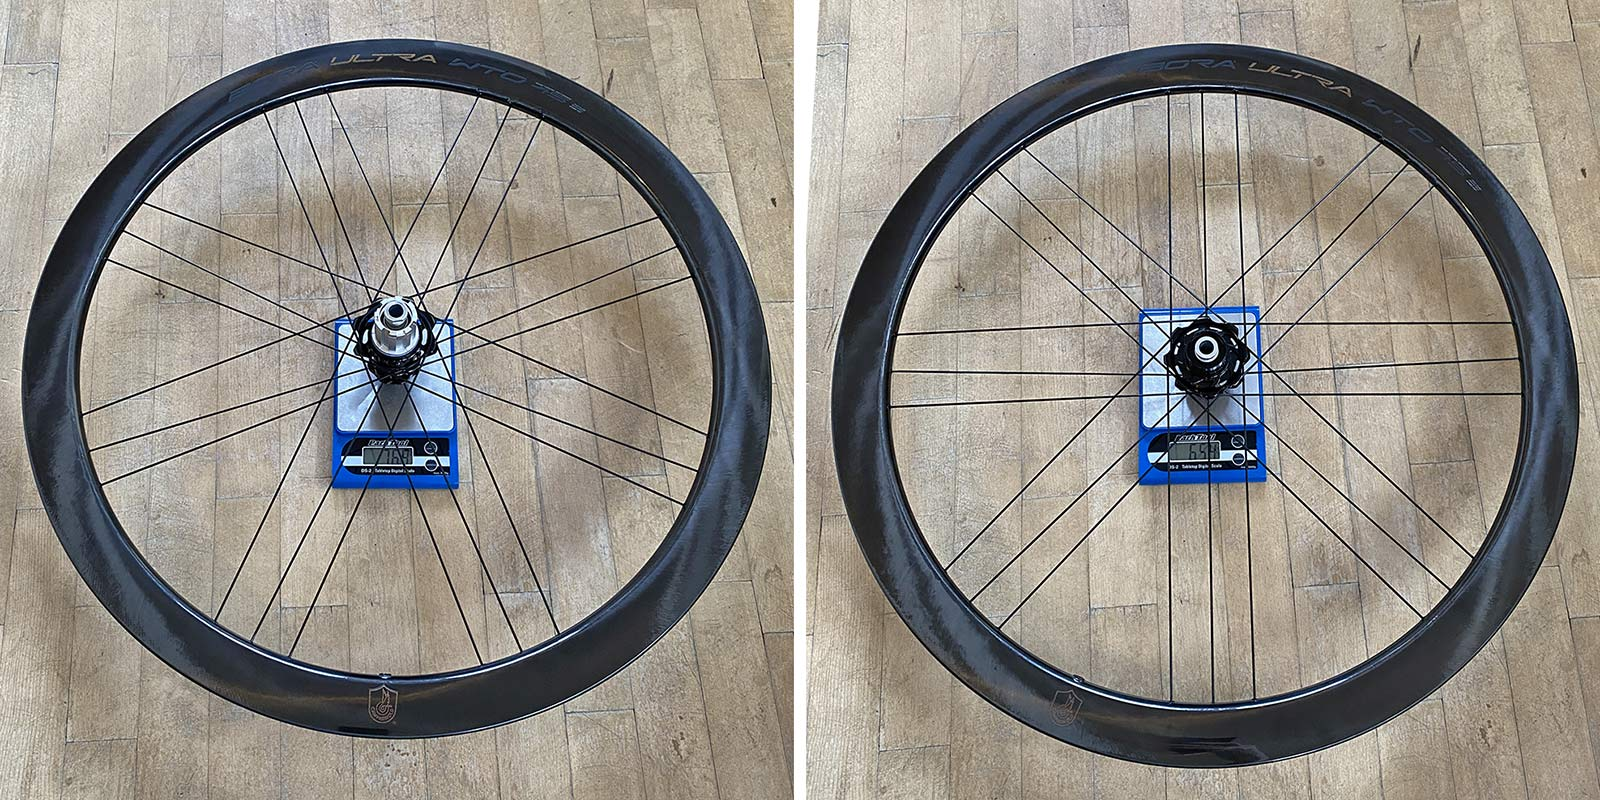 Review: new 2021 Campagnolo Bora Ultra WTO 45 aero carbon disc brake road bike wheels, actual weight